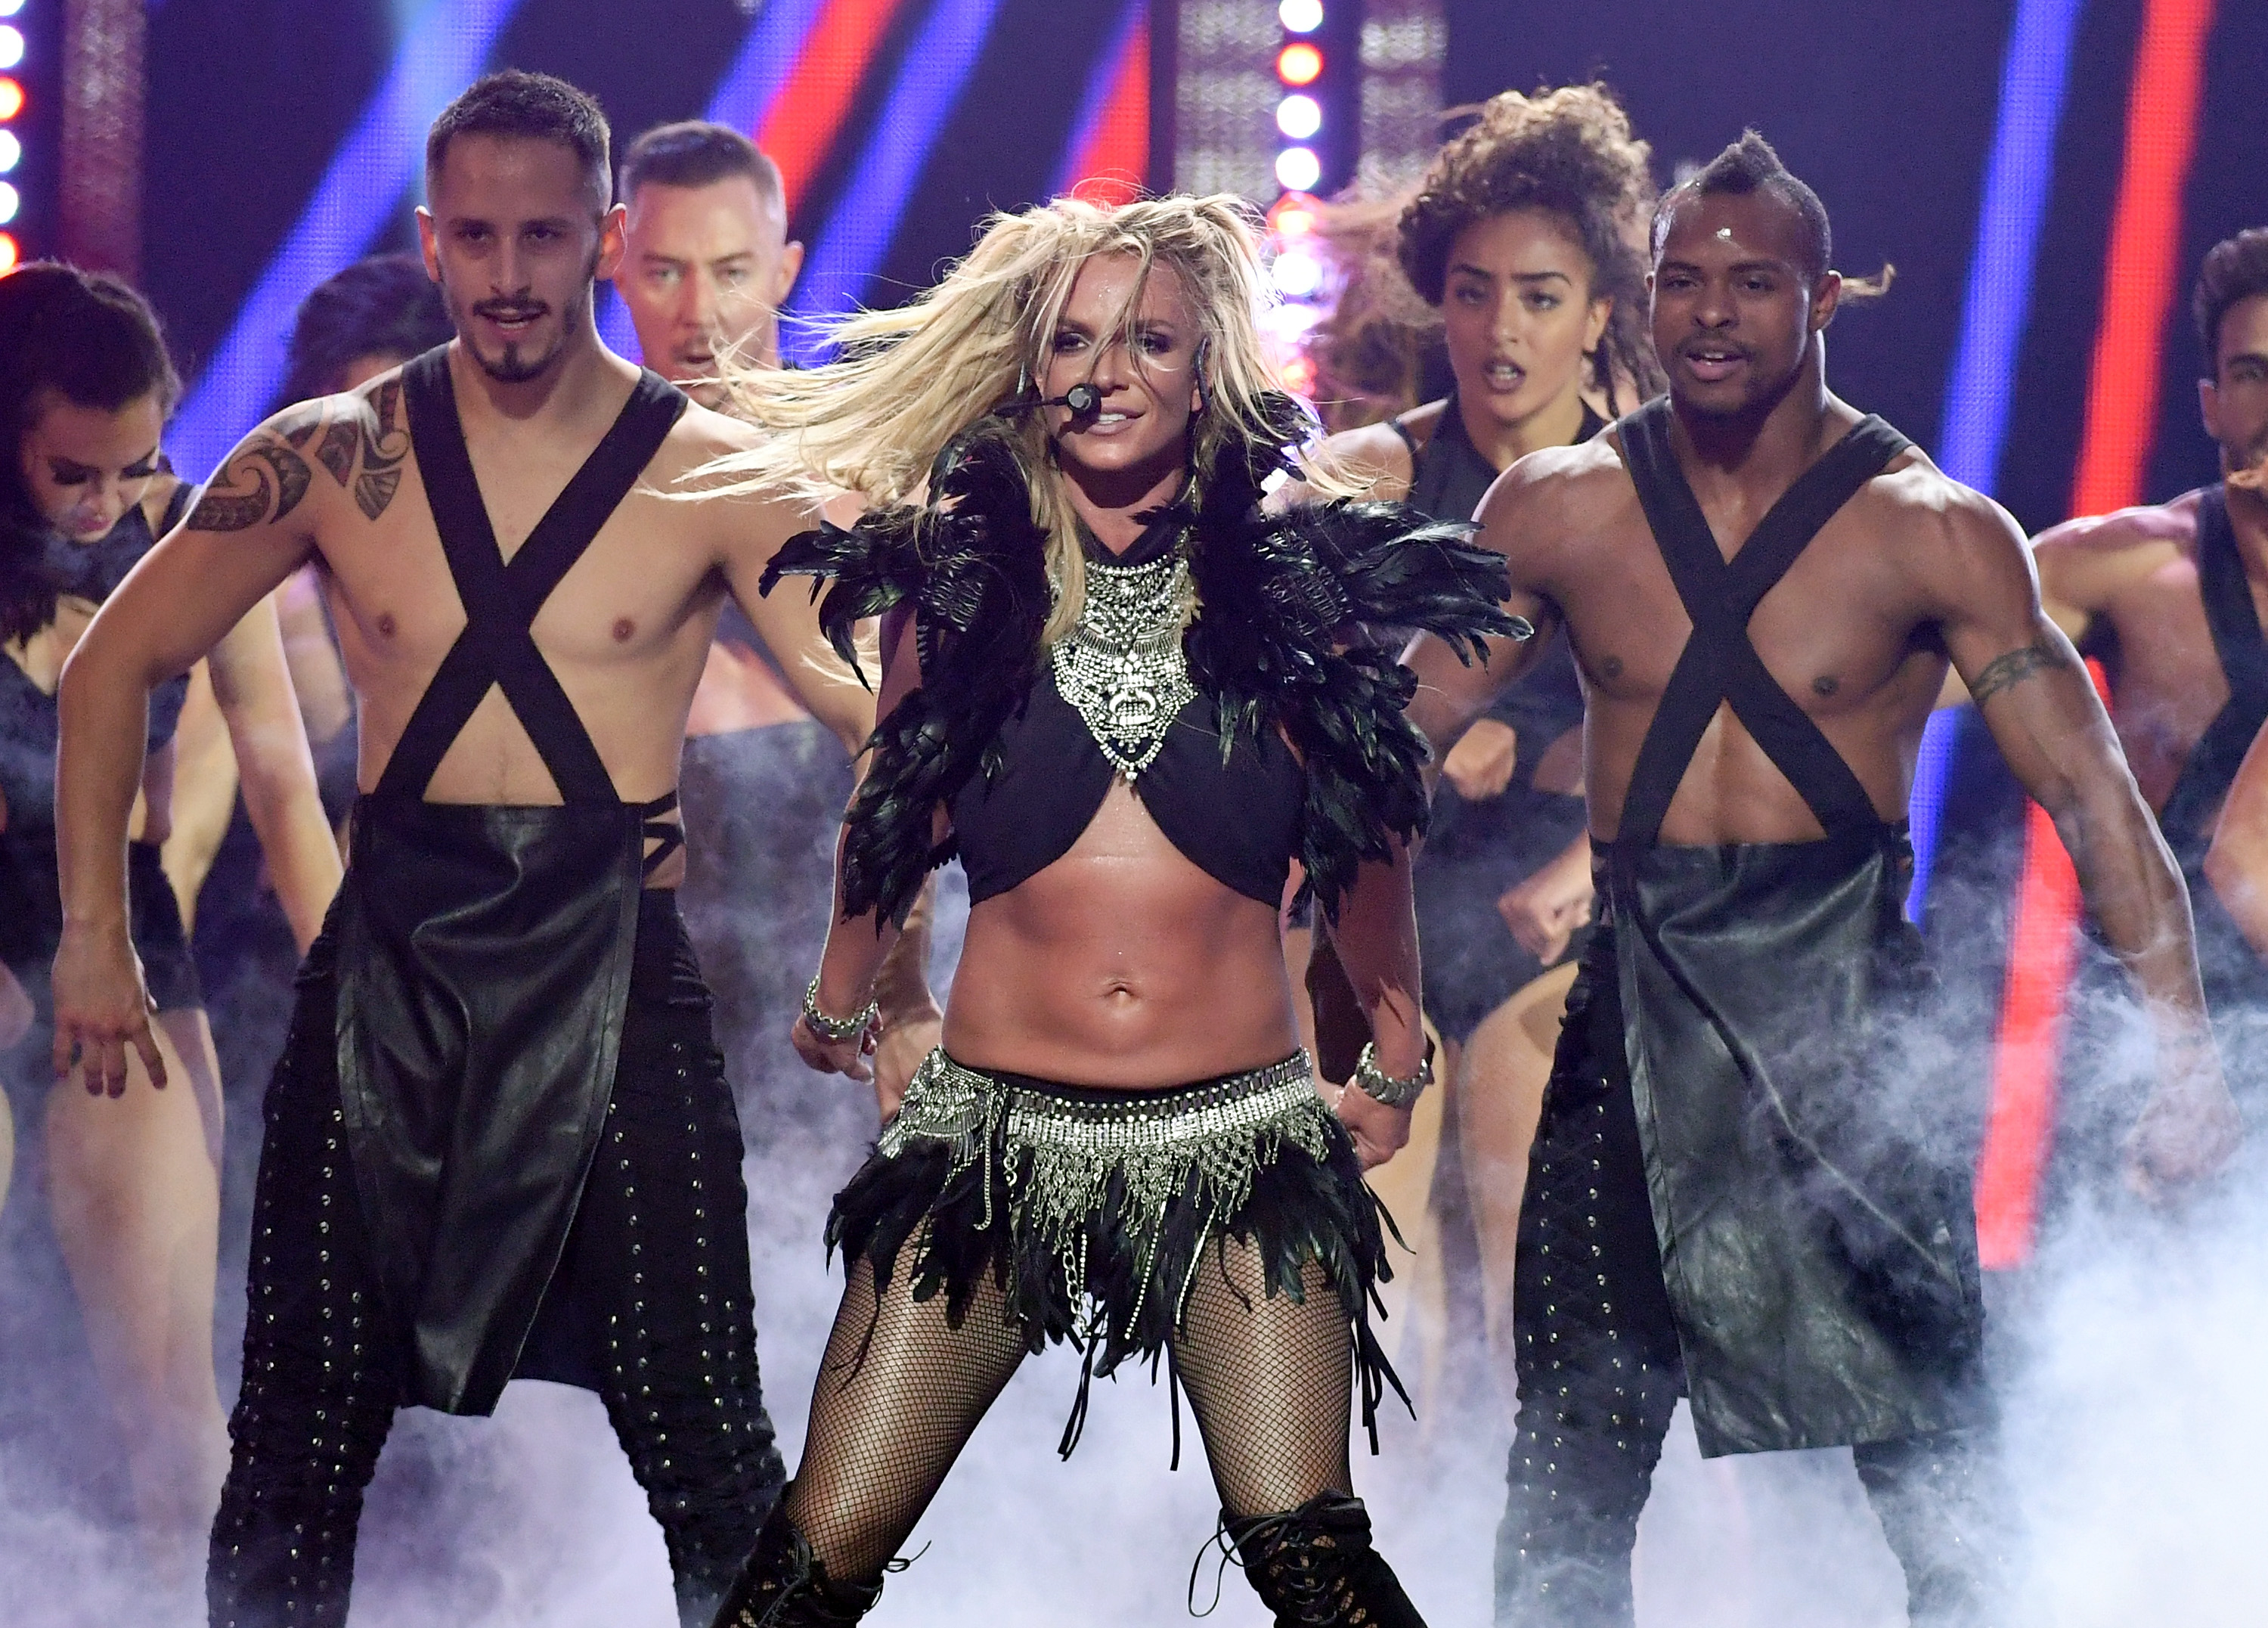 Britney Spears' male backup dancers are actually the Spice Boys and we are not worthy